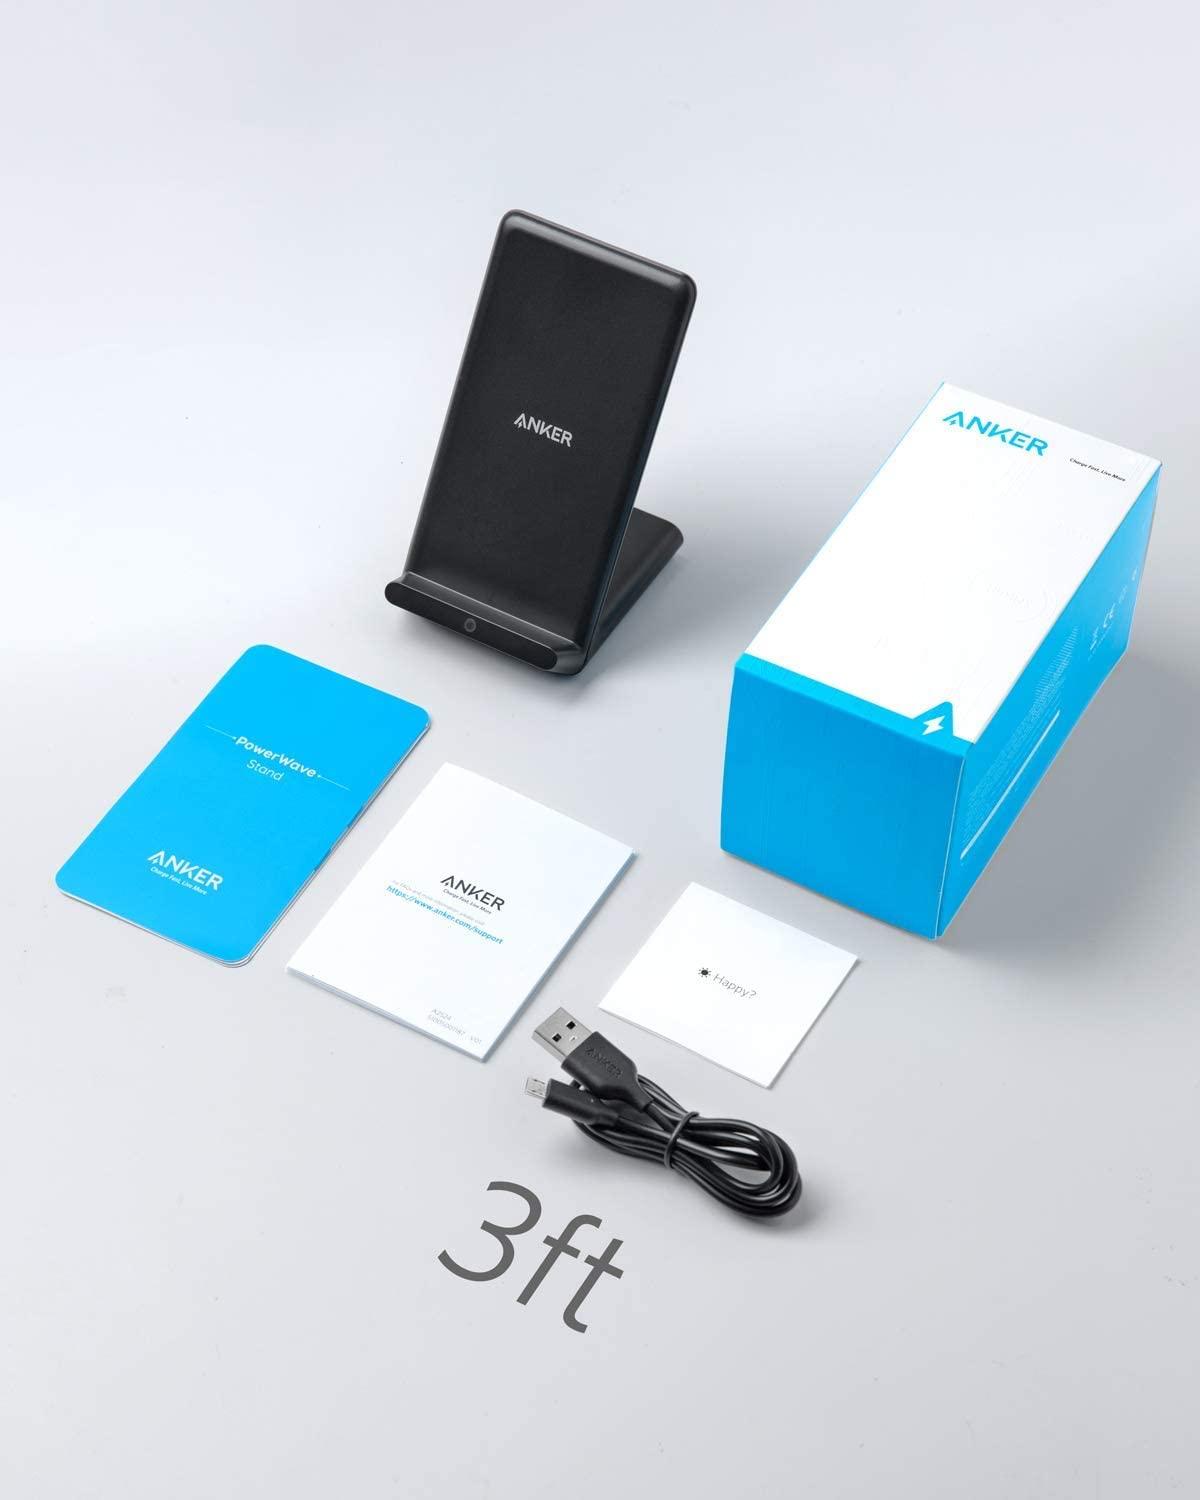 X PowerWave Stand 8 Anker Wireless Charger Note 10 Note 9 and More 10W Fast-Charging Galaxy S10 S9 S8 Qi-Certified for iPhone 11 Renewed XS XR No AC Adapter